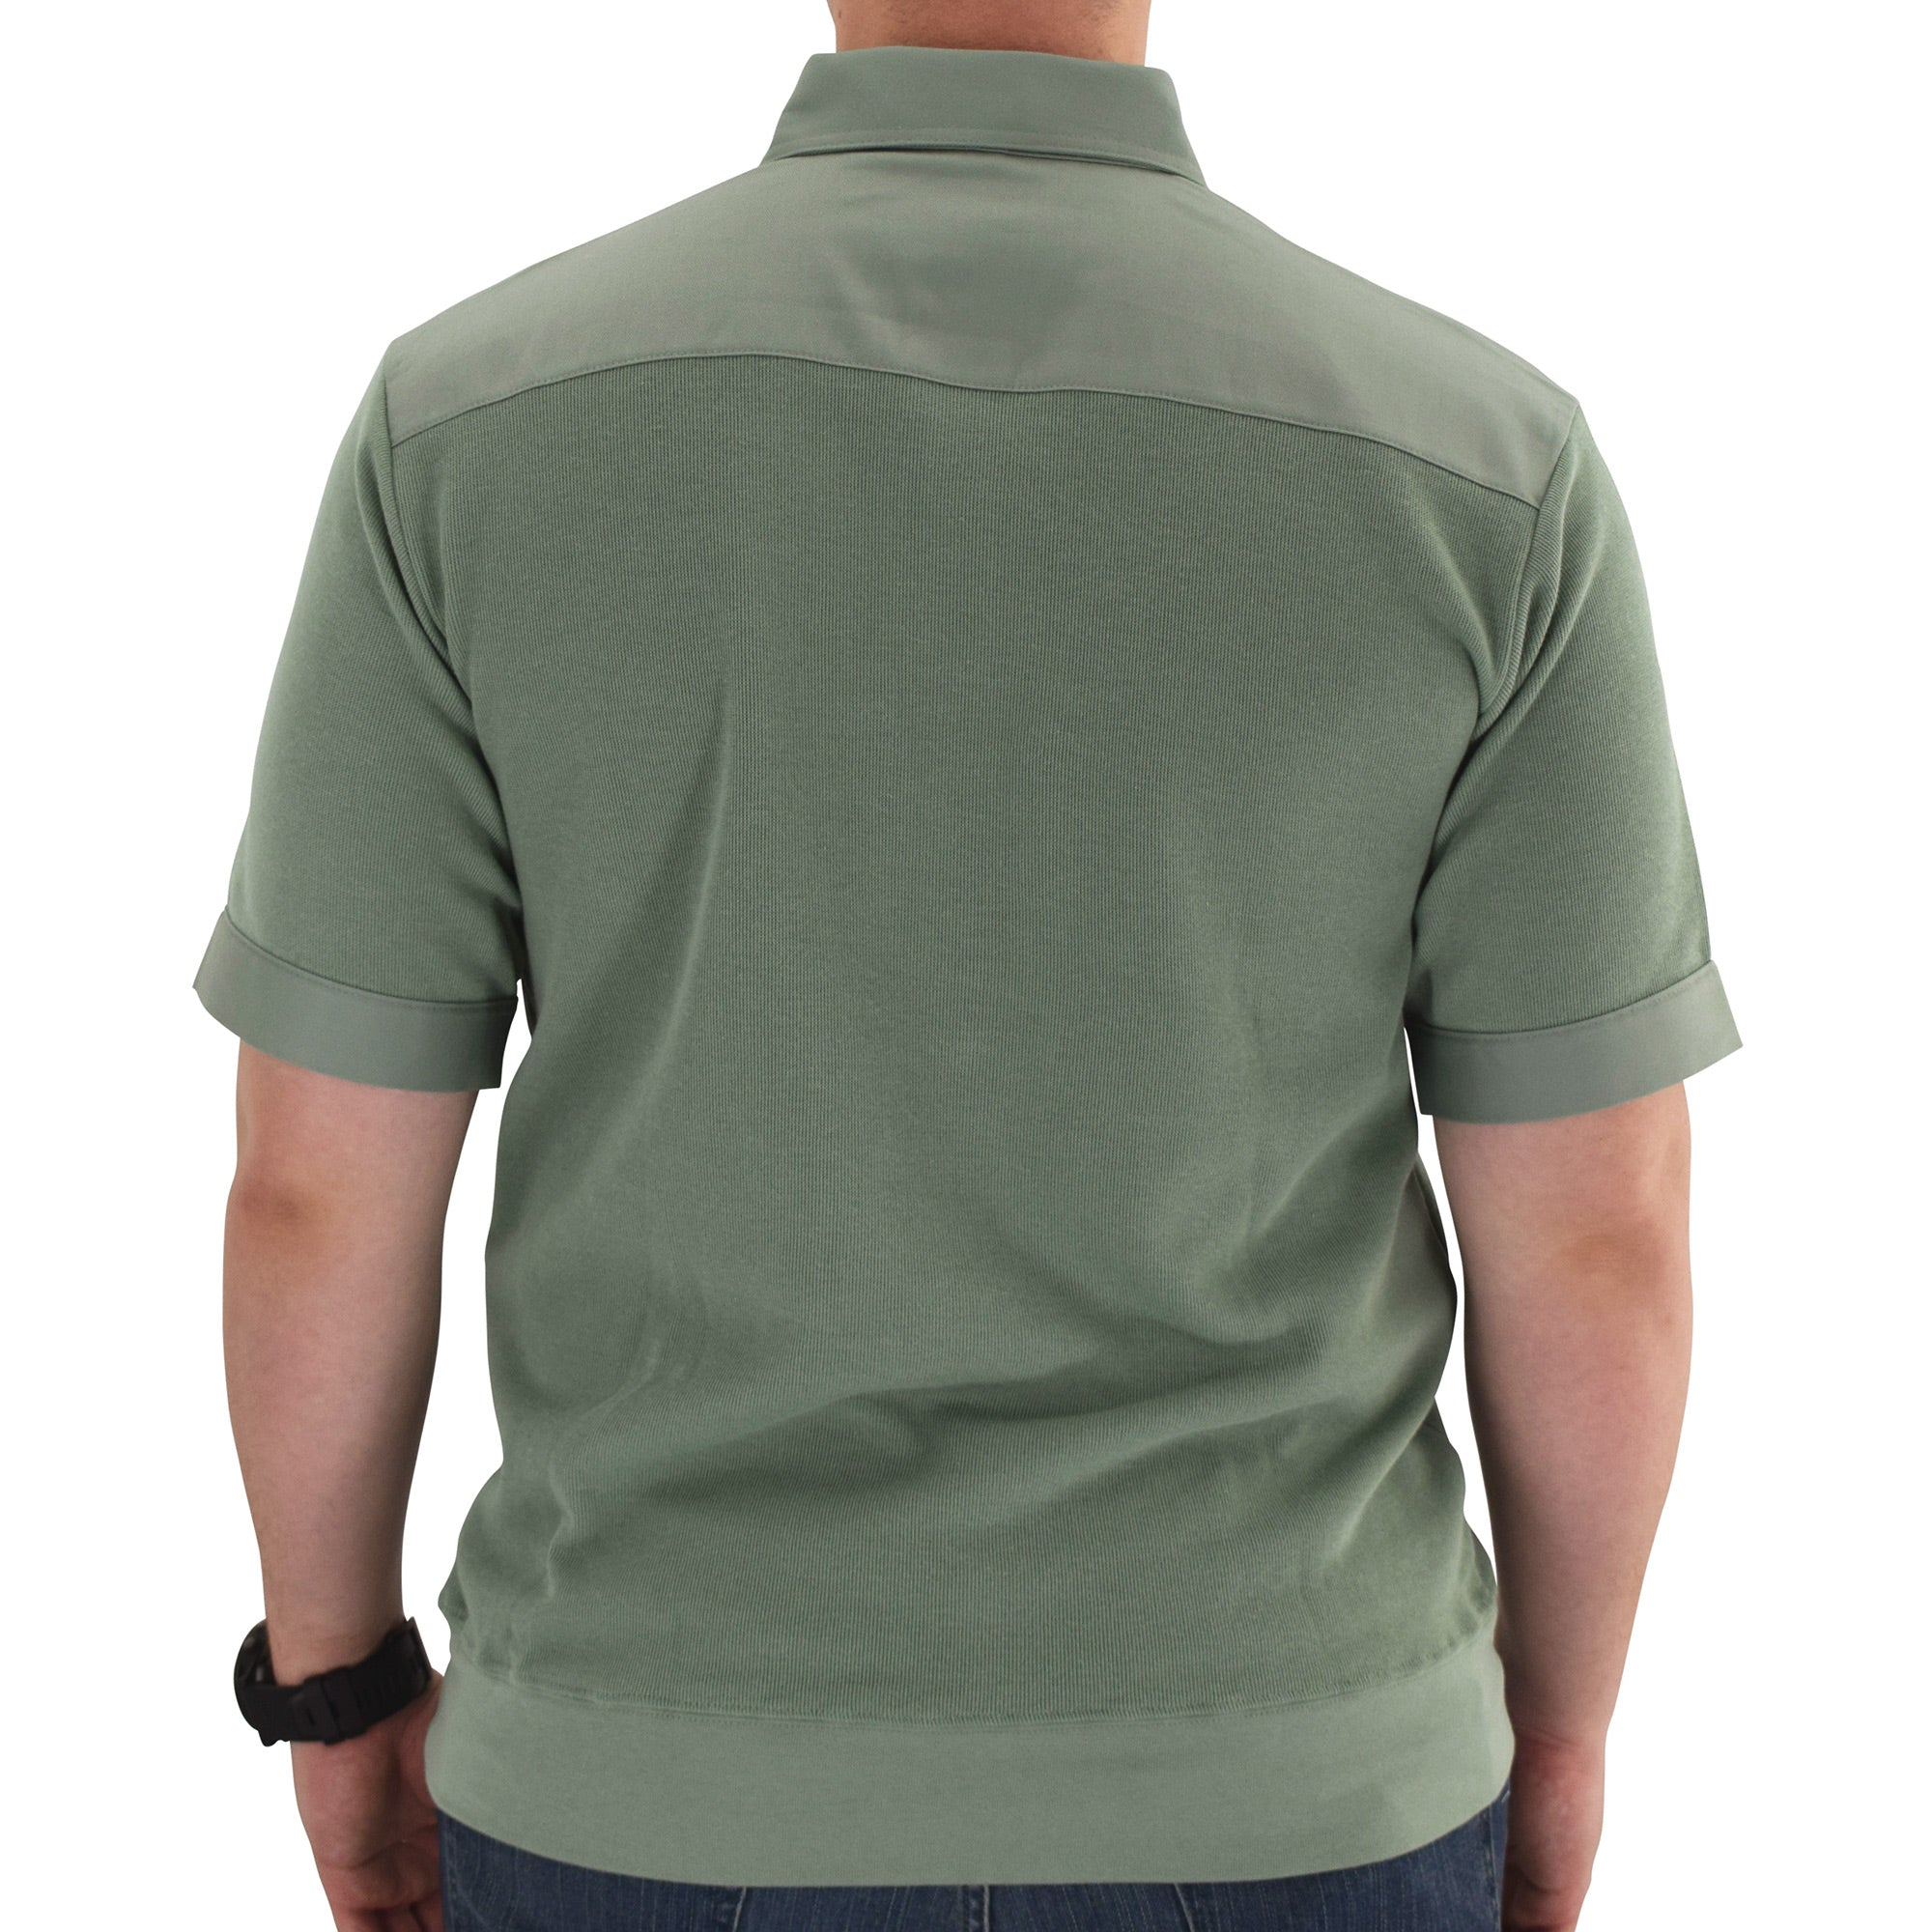 Mens Solid Knit Banded Bottom Shirt with Woven Chest Panel 6041-22N Big and Tall - Sage - theflagshirt